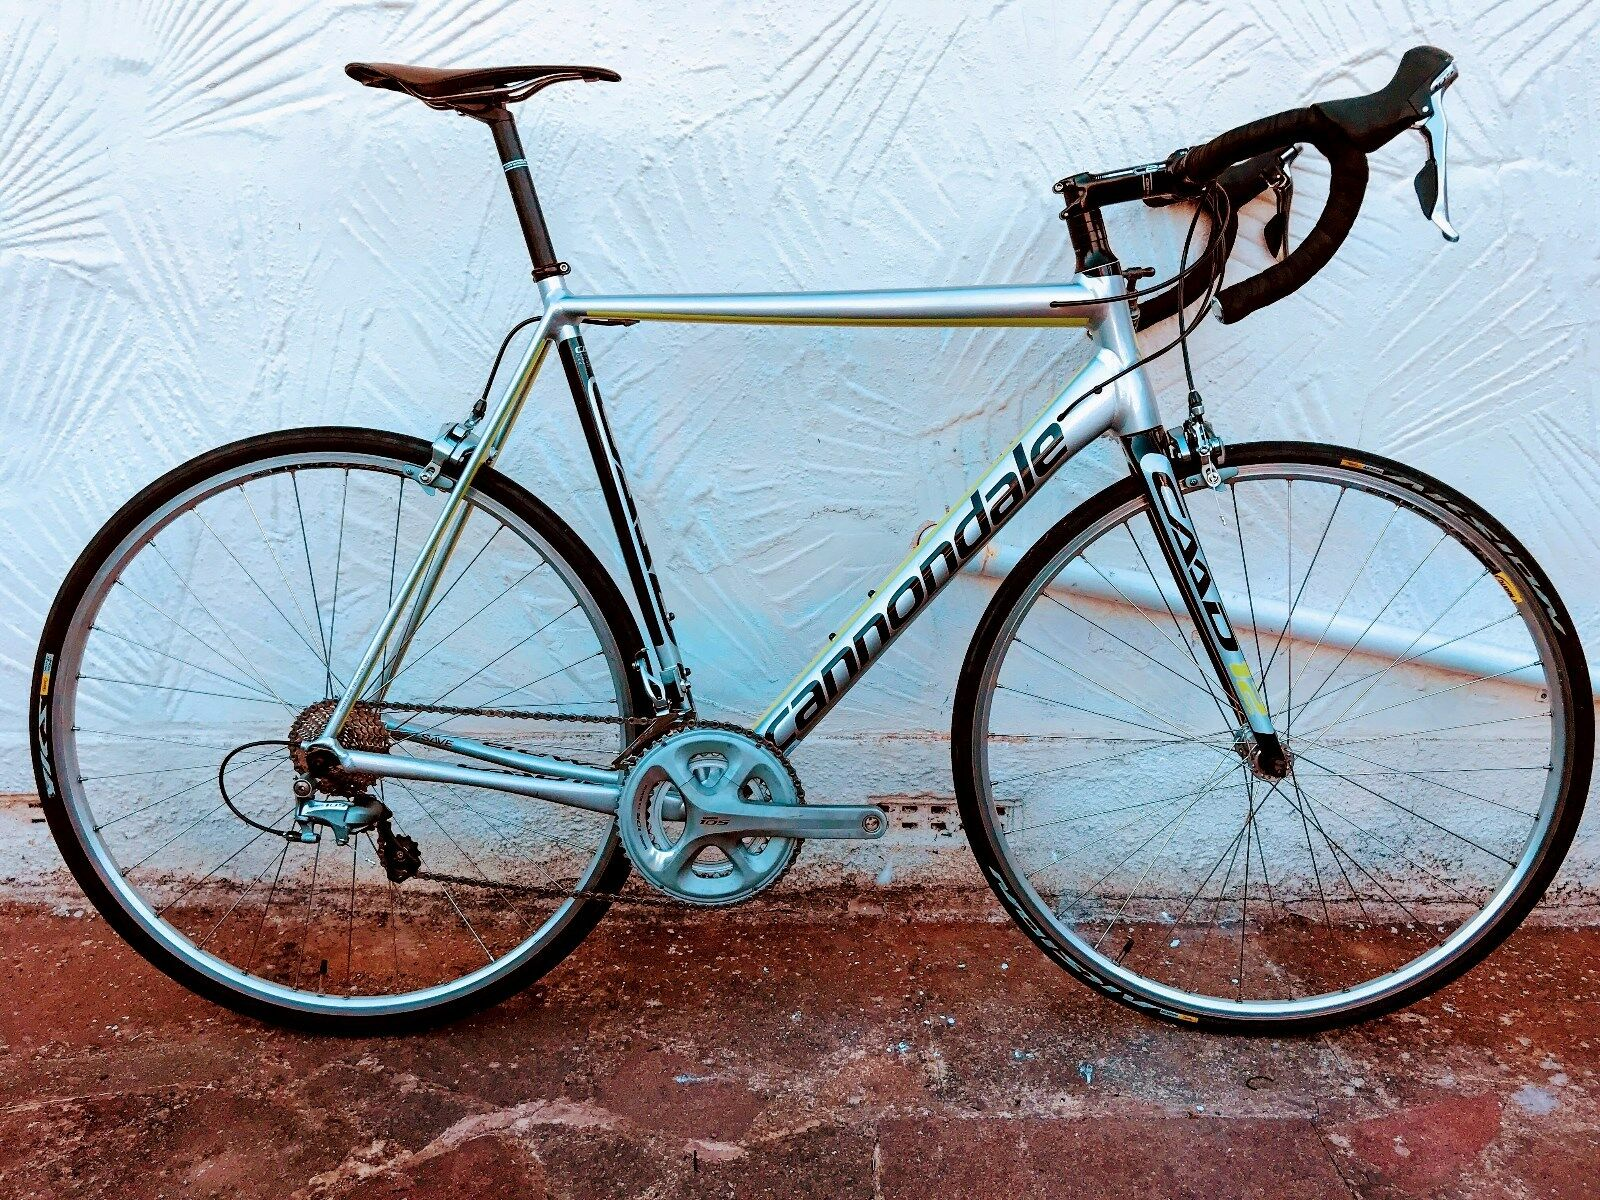 Cannondale Caad 12 11spd Full Shimano 105 5800 g set and w set